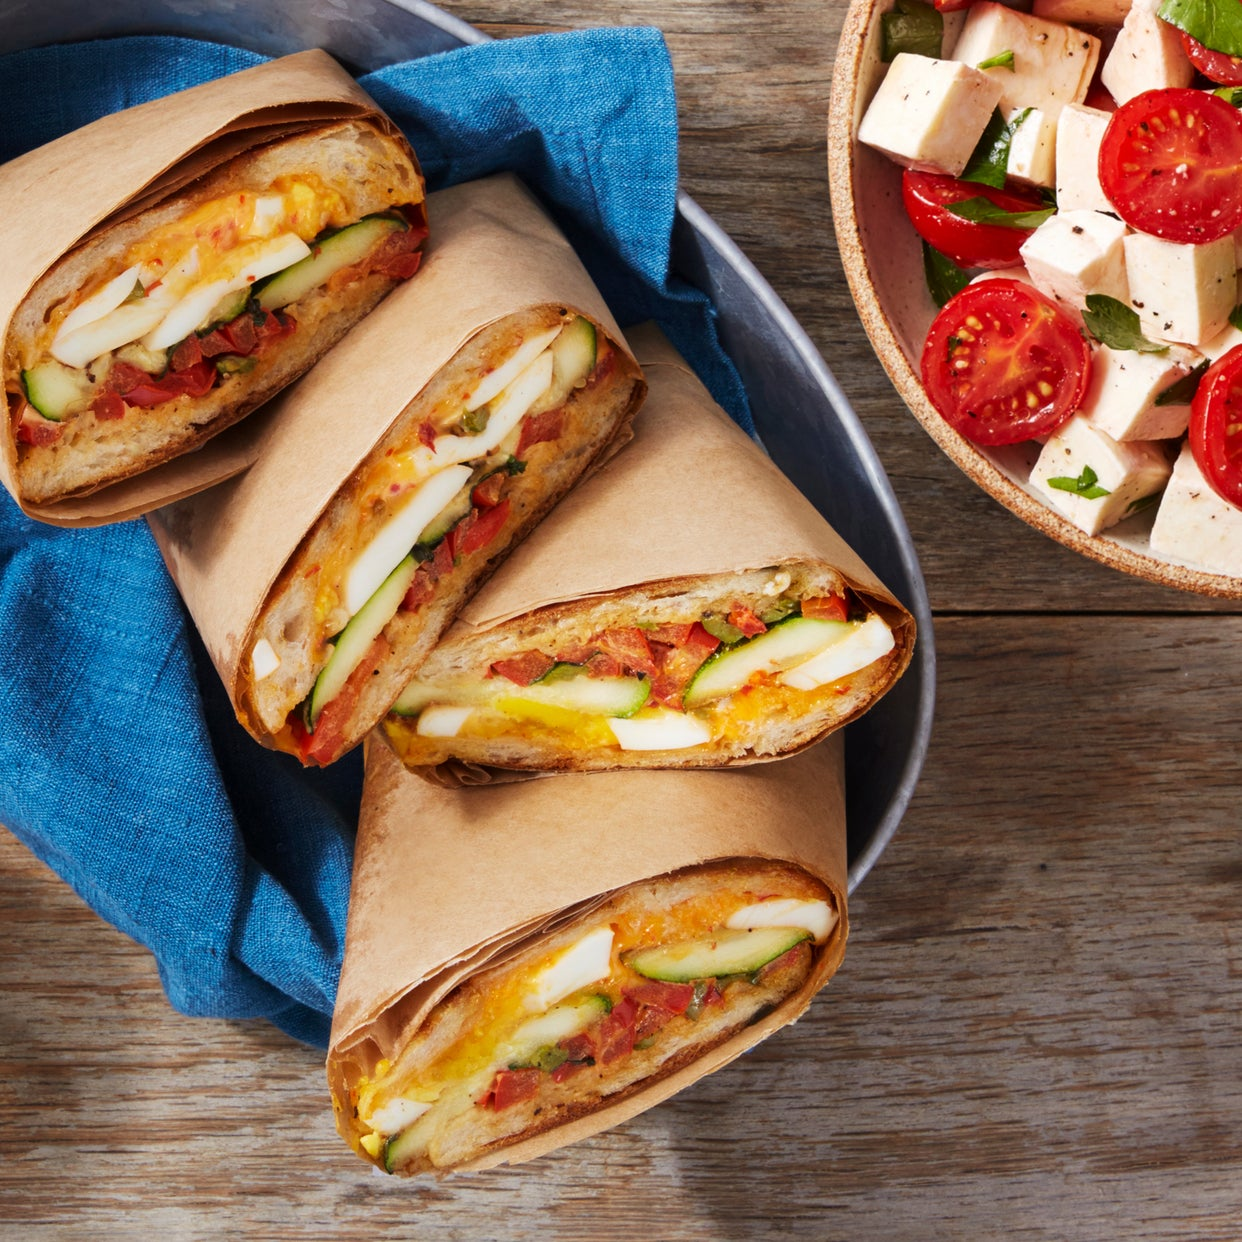 Summer Vegetable & Egg Paninis with Chile Mayonnaise & Tomato-Mozzarella Salad